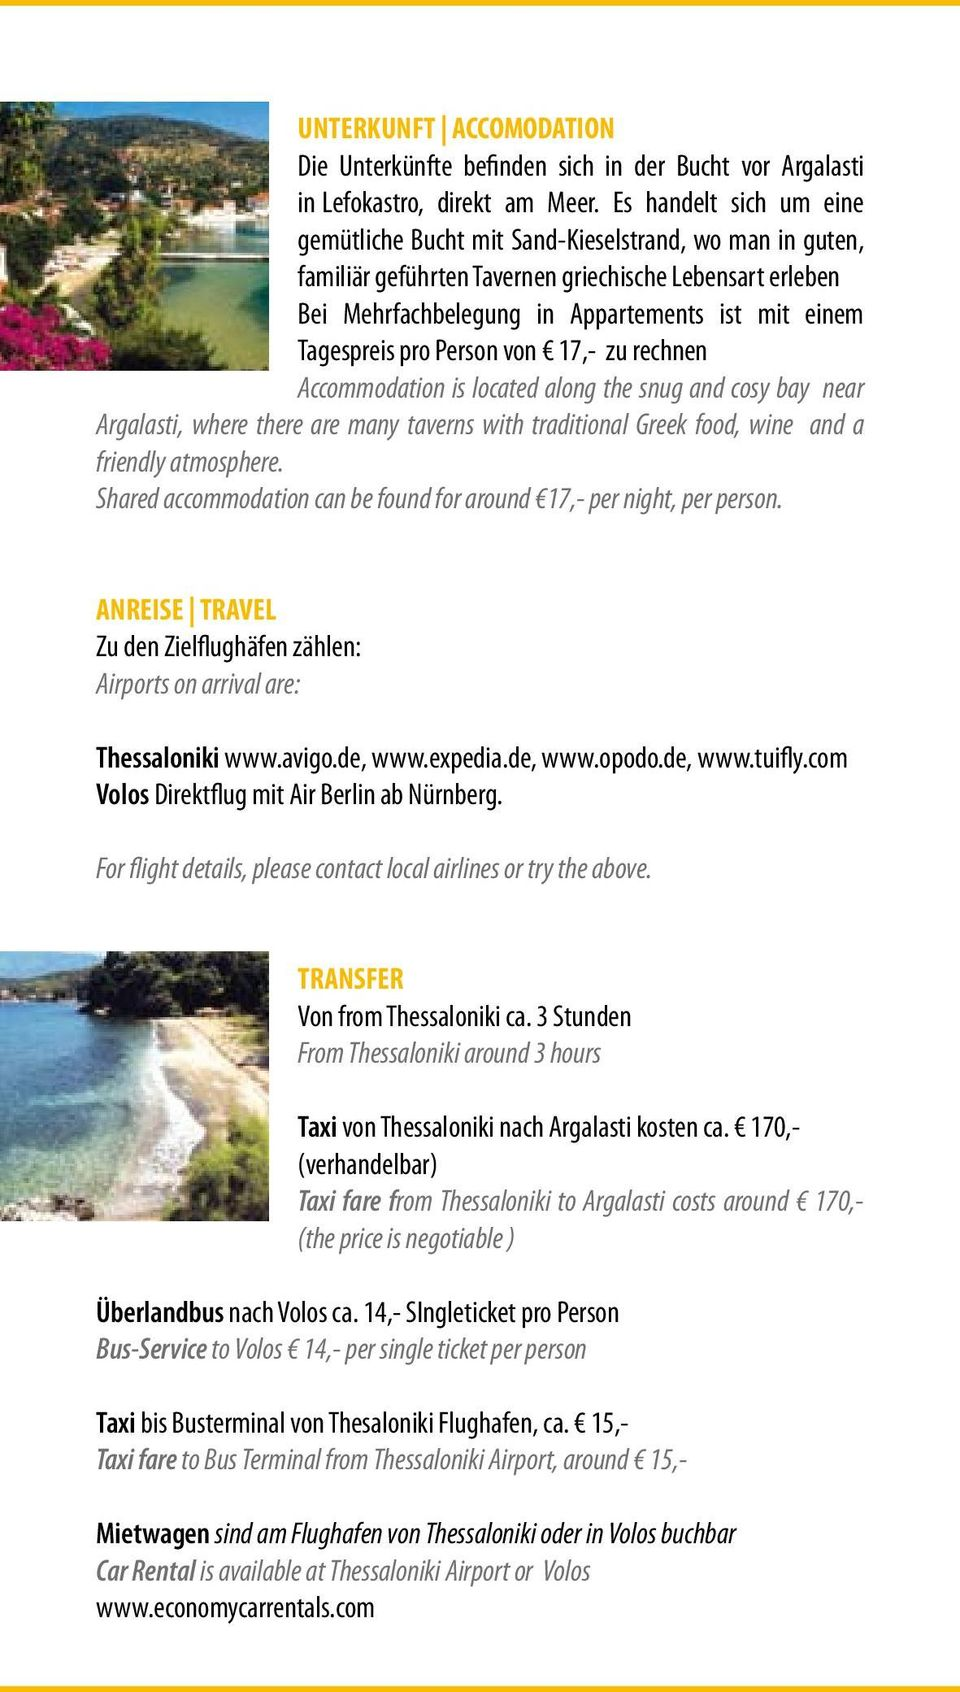 Tagespreis pro Person von 17,- zu rechnen Accommodation is located along the snug and cosy bay near Argalasti, where there are many taverns with traditional Greek food, wine and a friendly atmosphere.